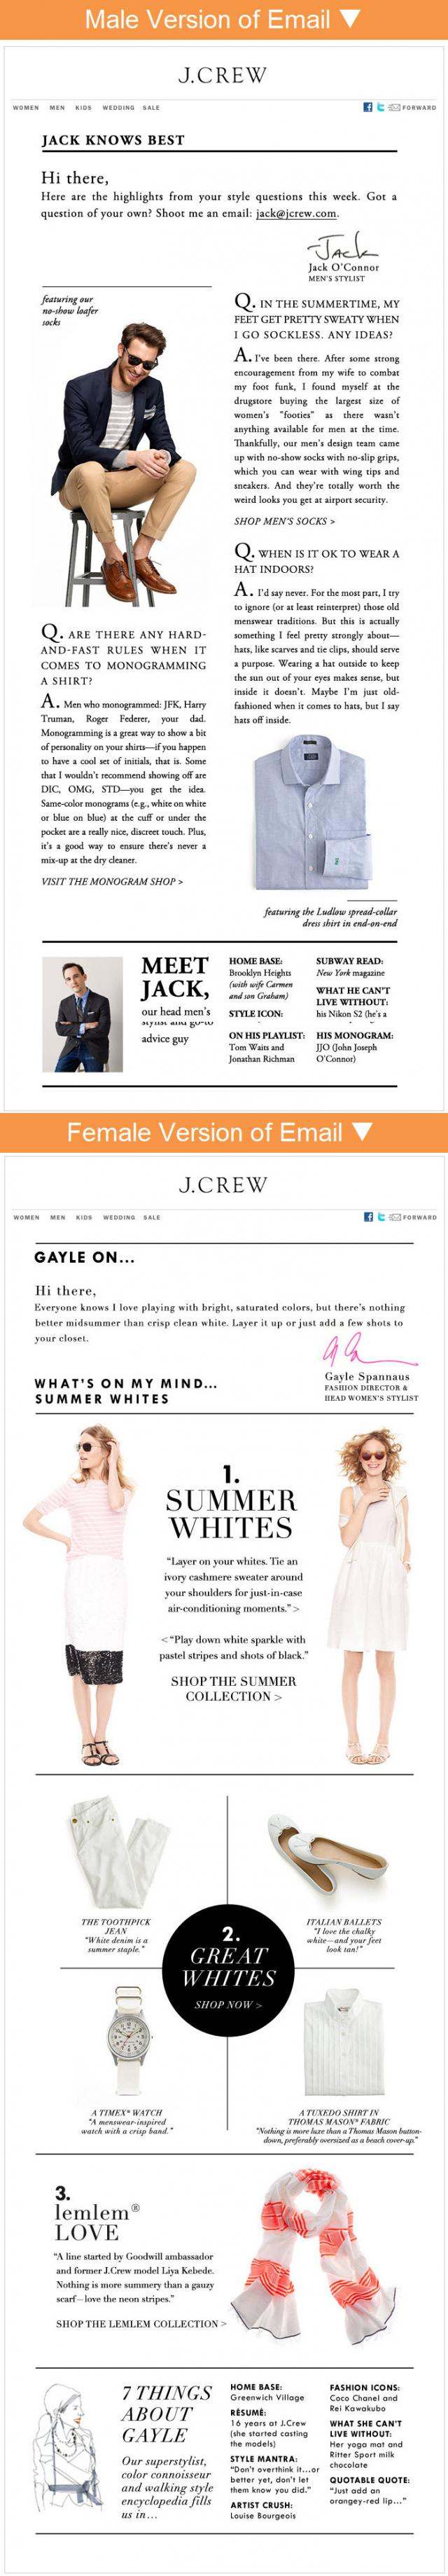 View this J.Crew email on Pinterest